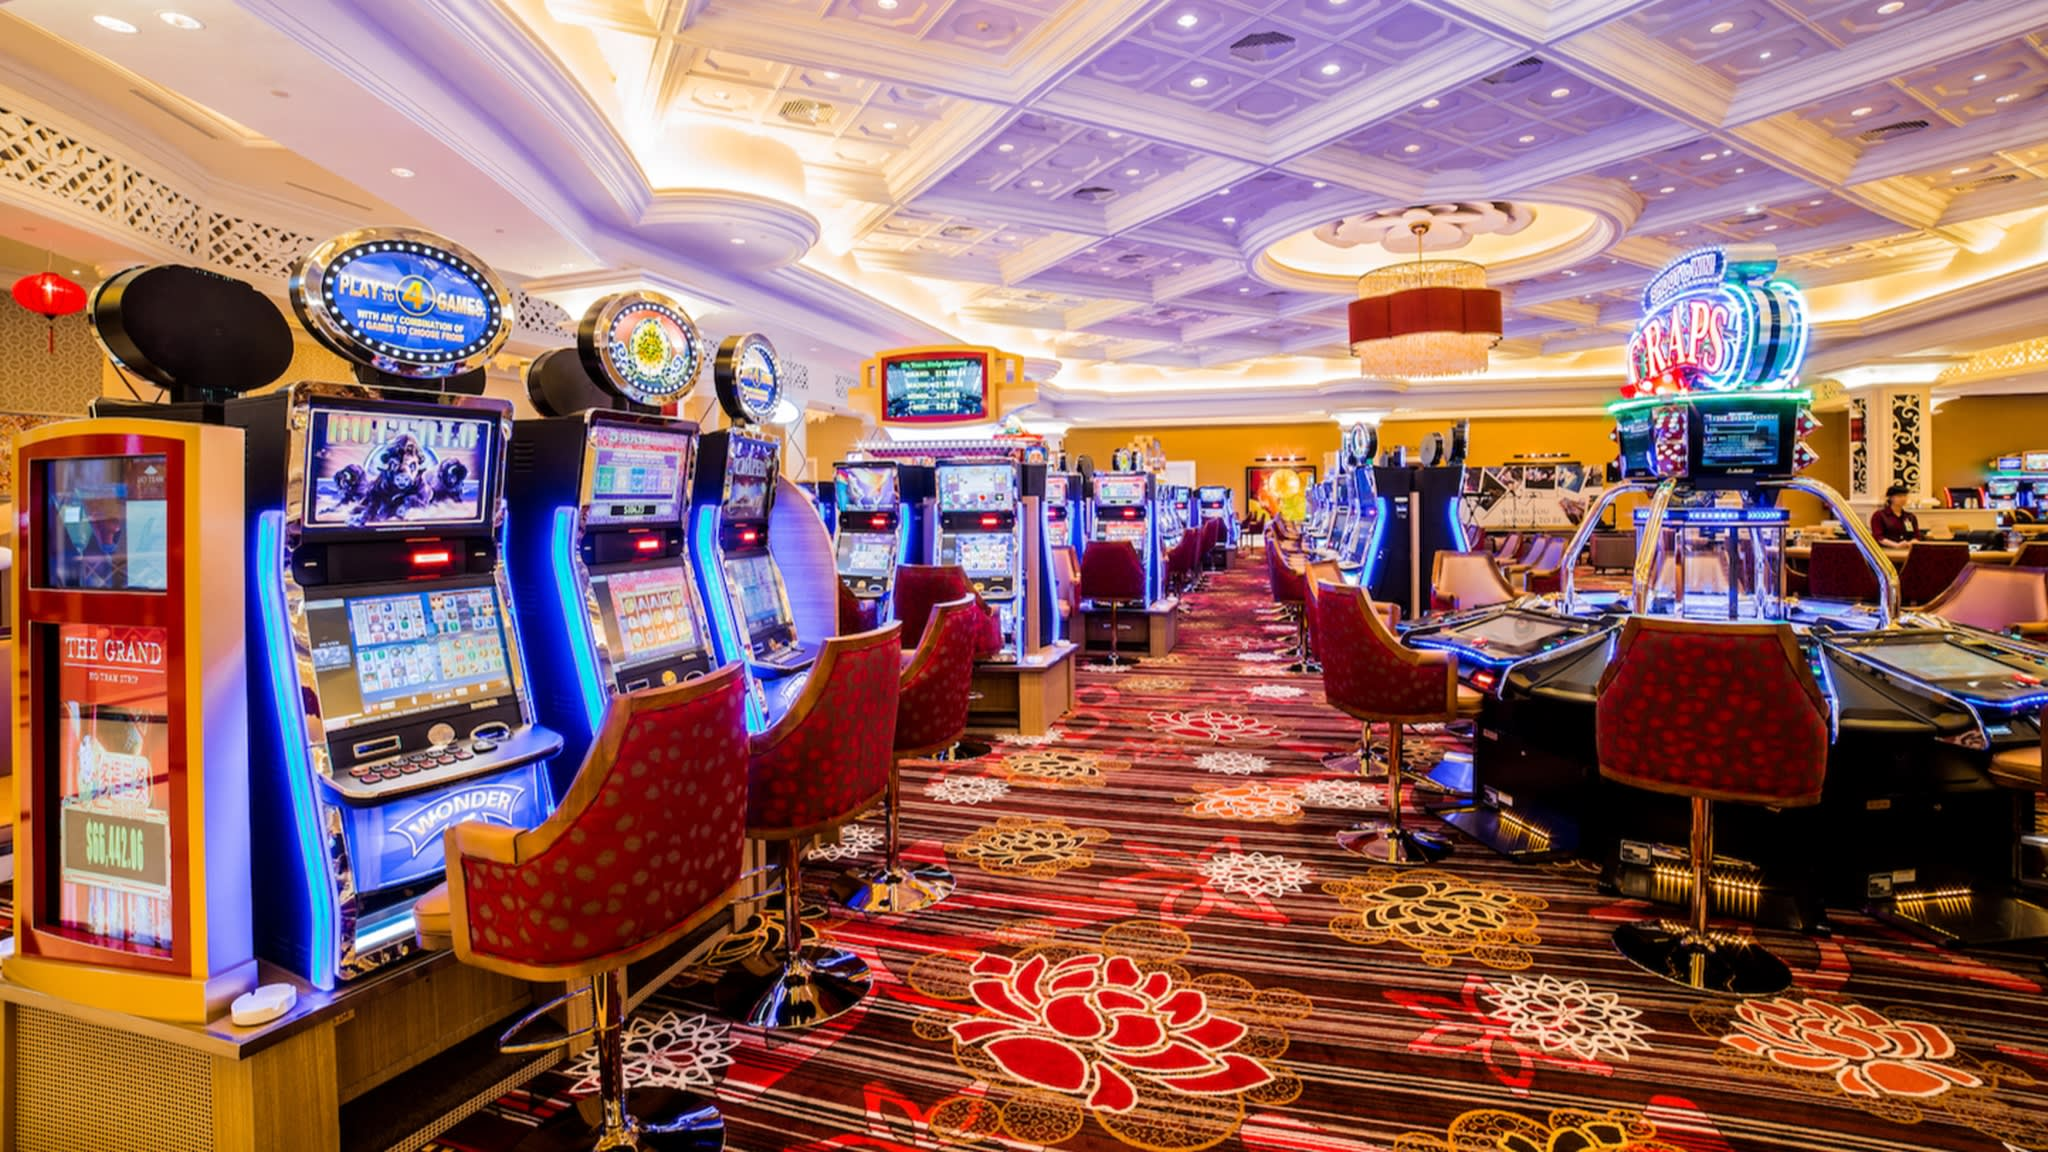 The Best Way To Be Blissful At Gambling - Not!